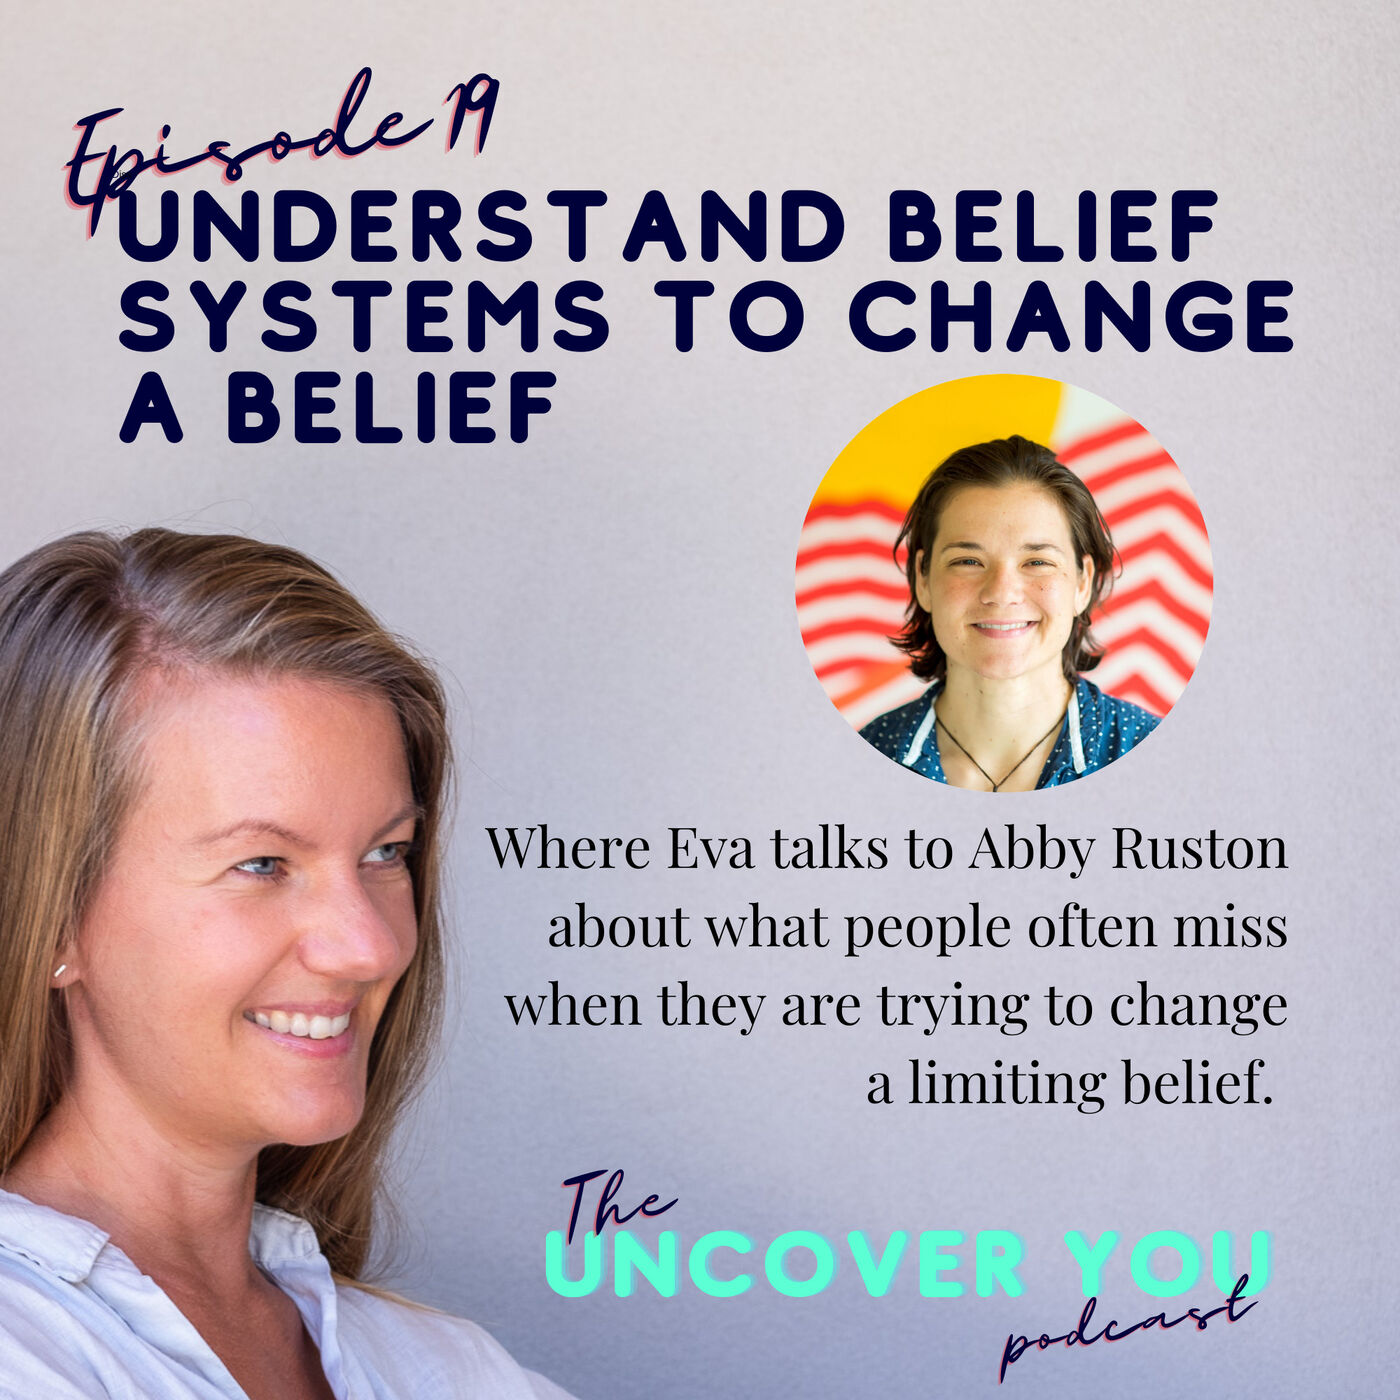 Ep 19: Understand belief systems to change a belief